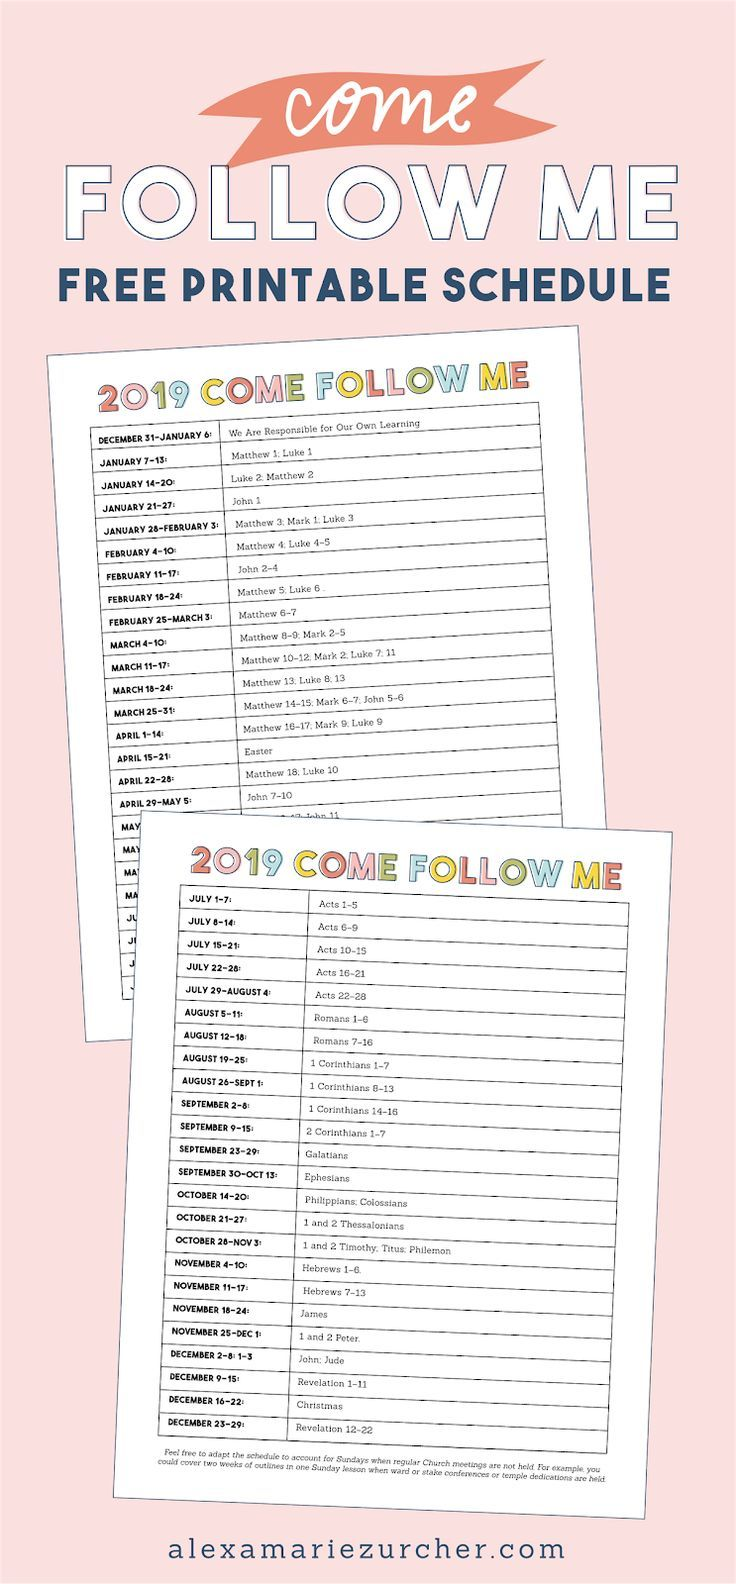 2019 Come Follow Me Free Schedule Printable With Images